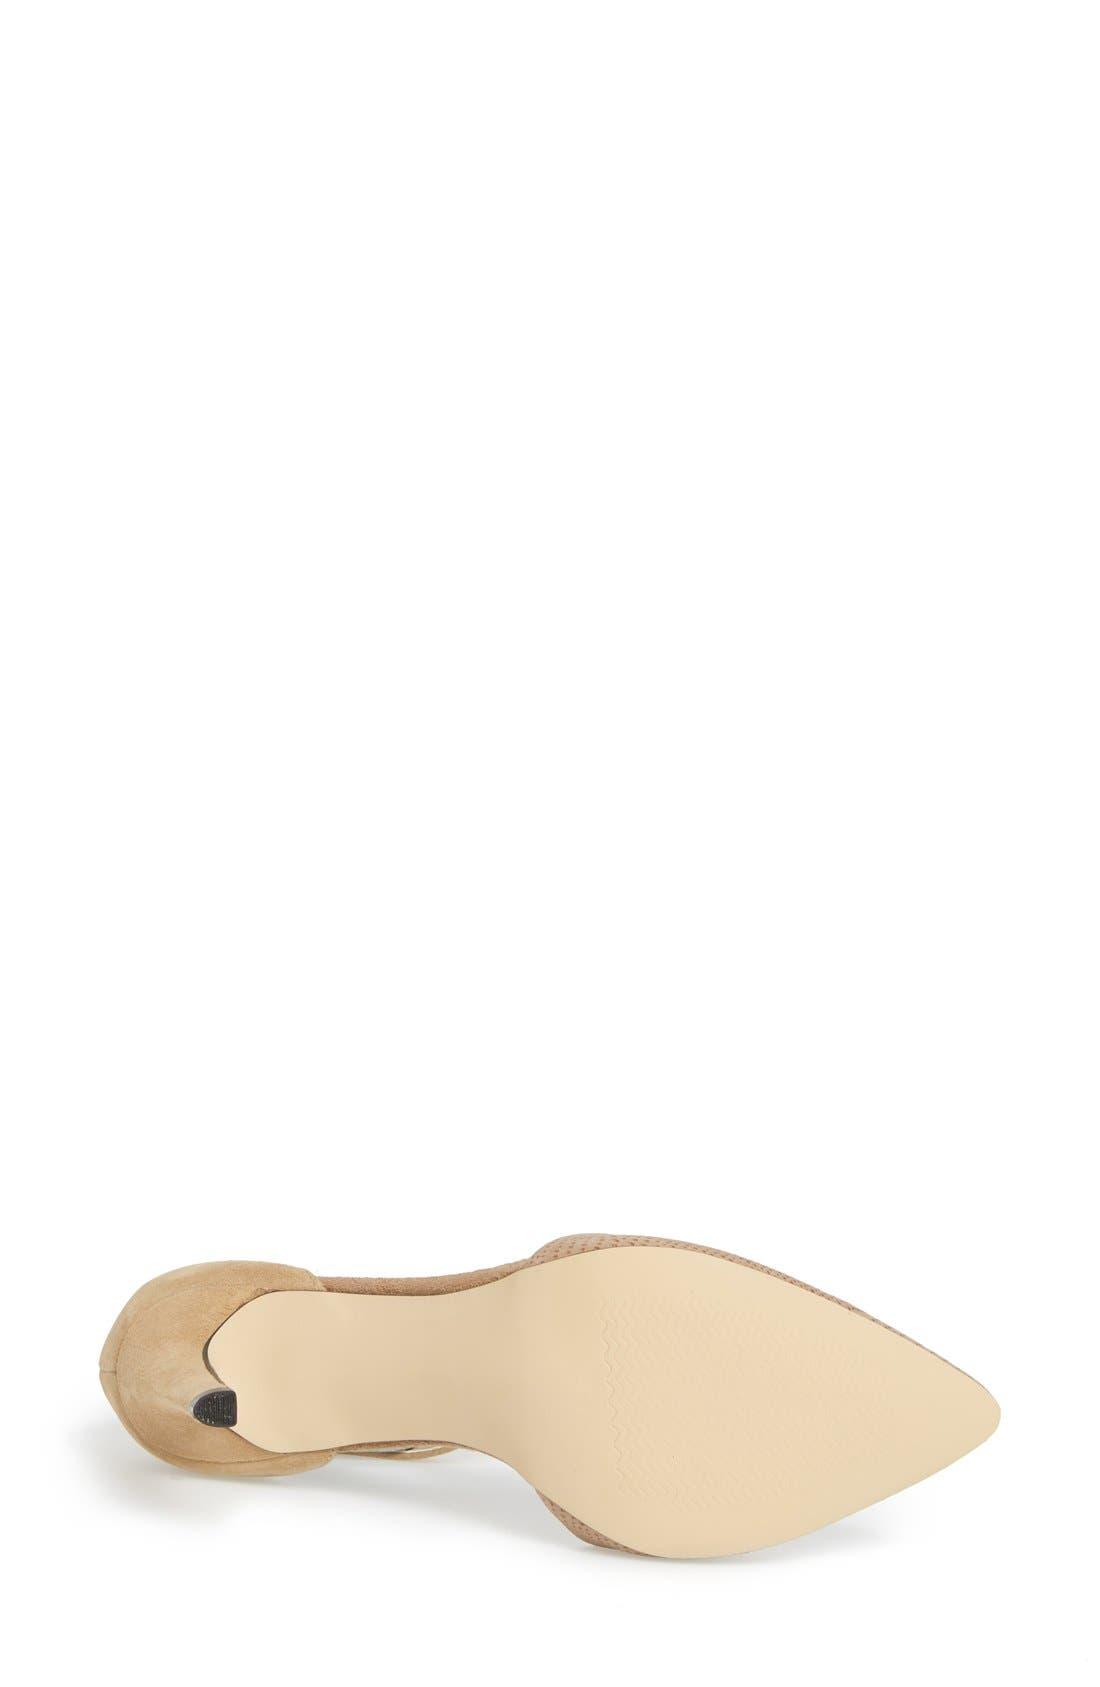 'Mallory' Ankle Strap Pump,                             Alternate thumbnail 4, color,                             Beige/ Nude